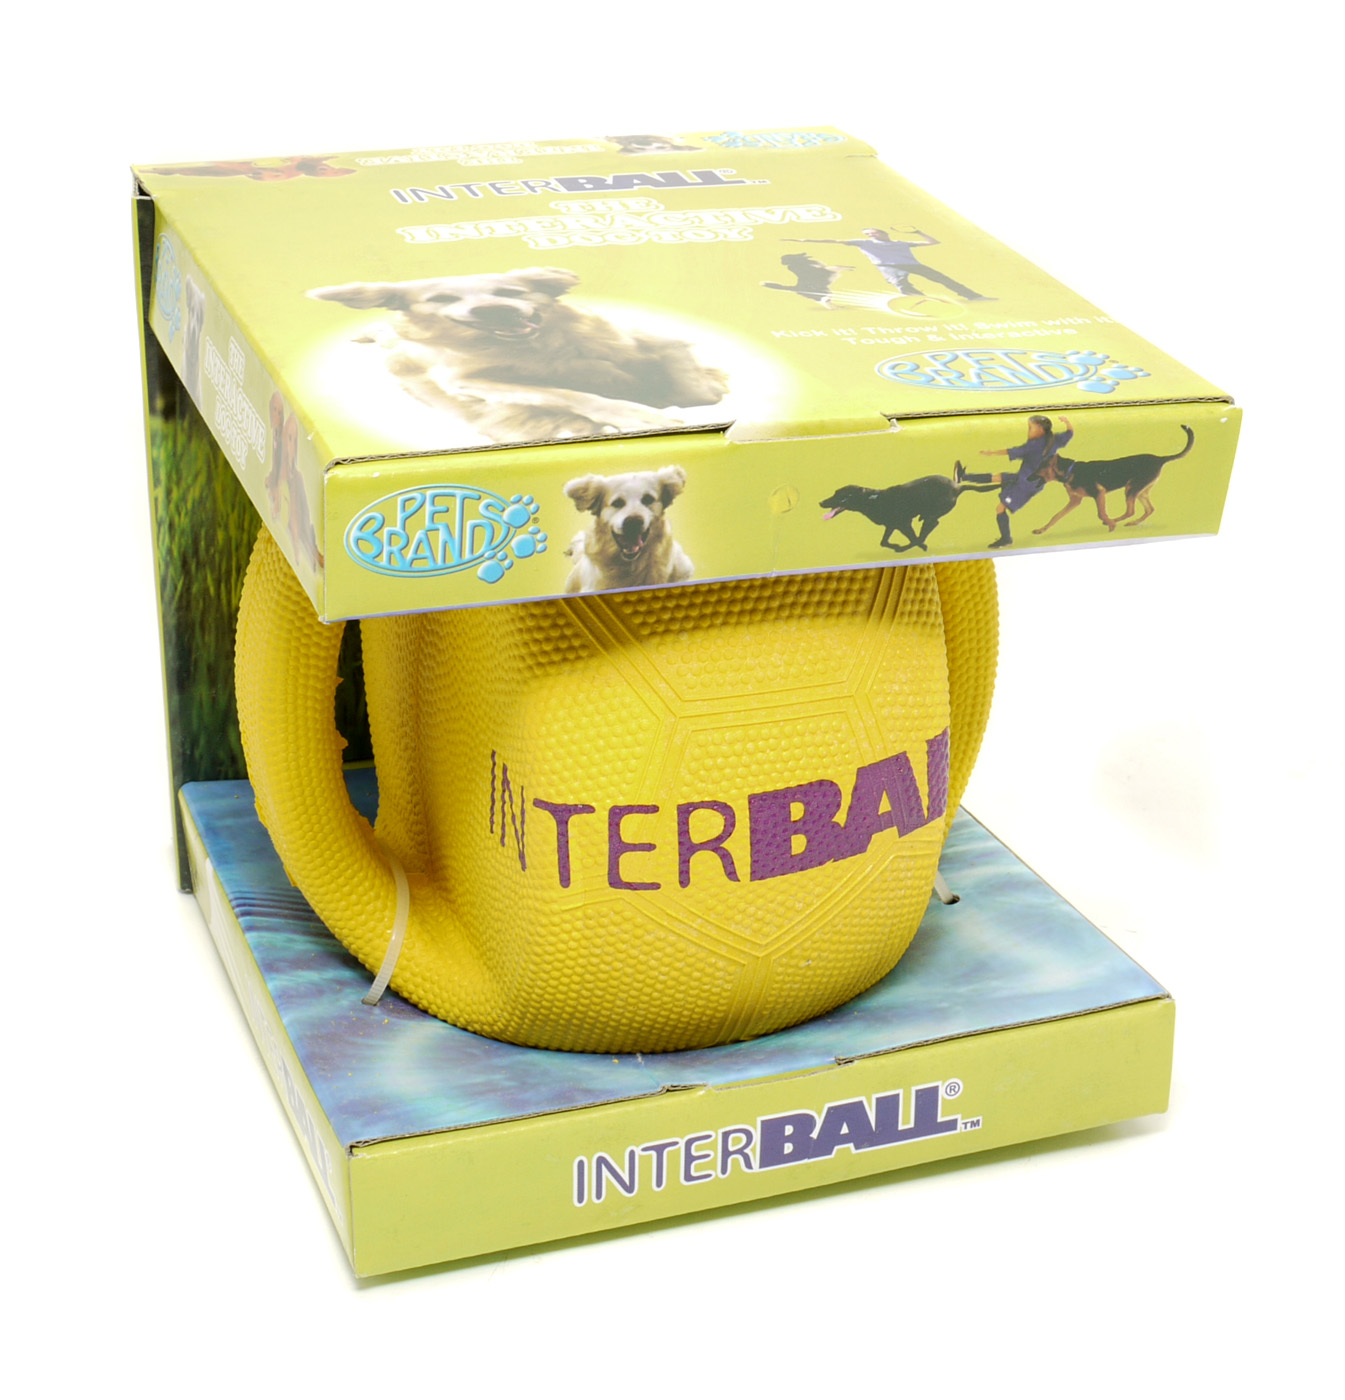 Pet Brands Interball Dog Toy